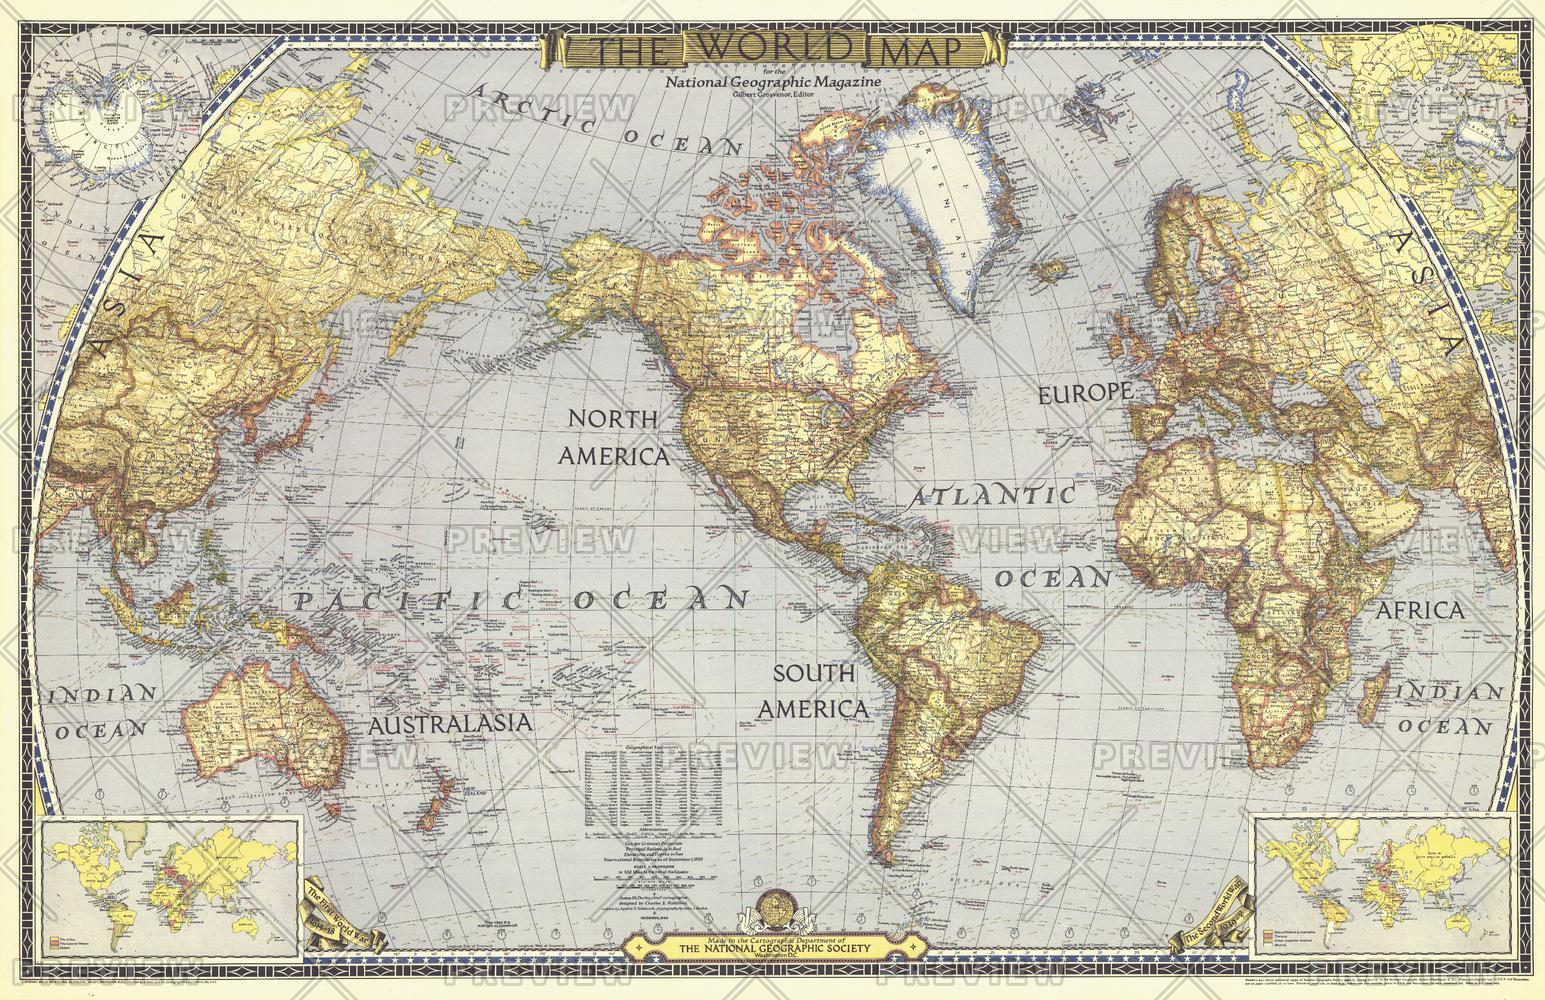 World Map - Published 1943